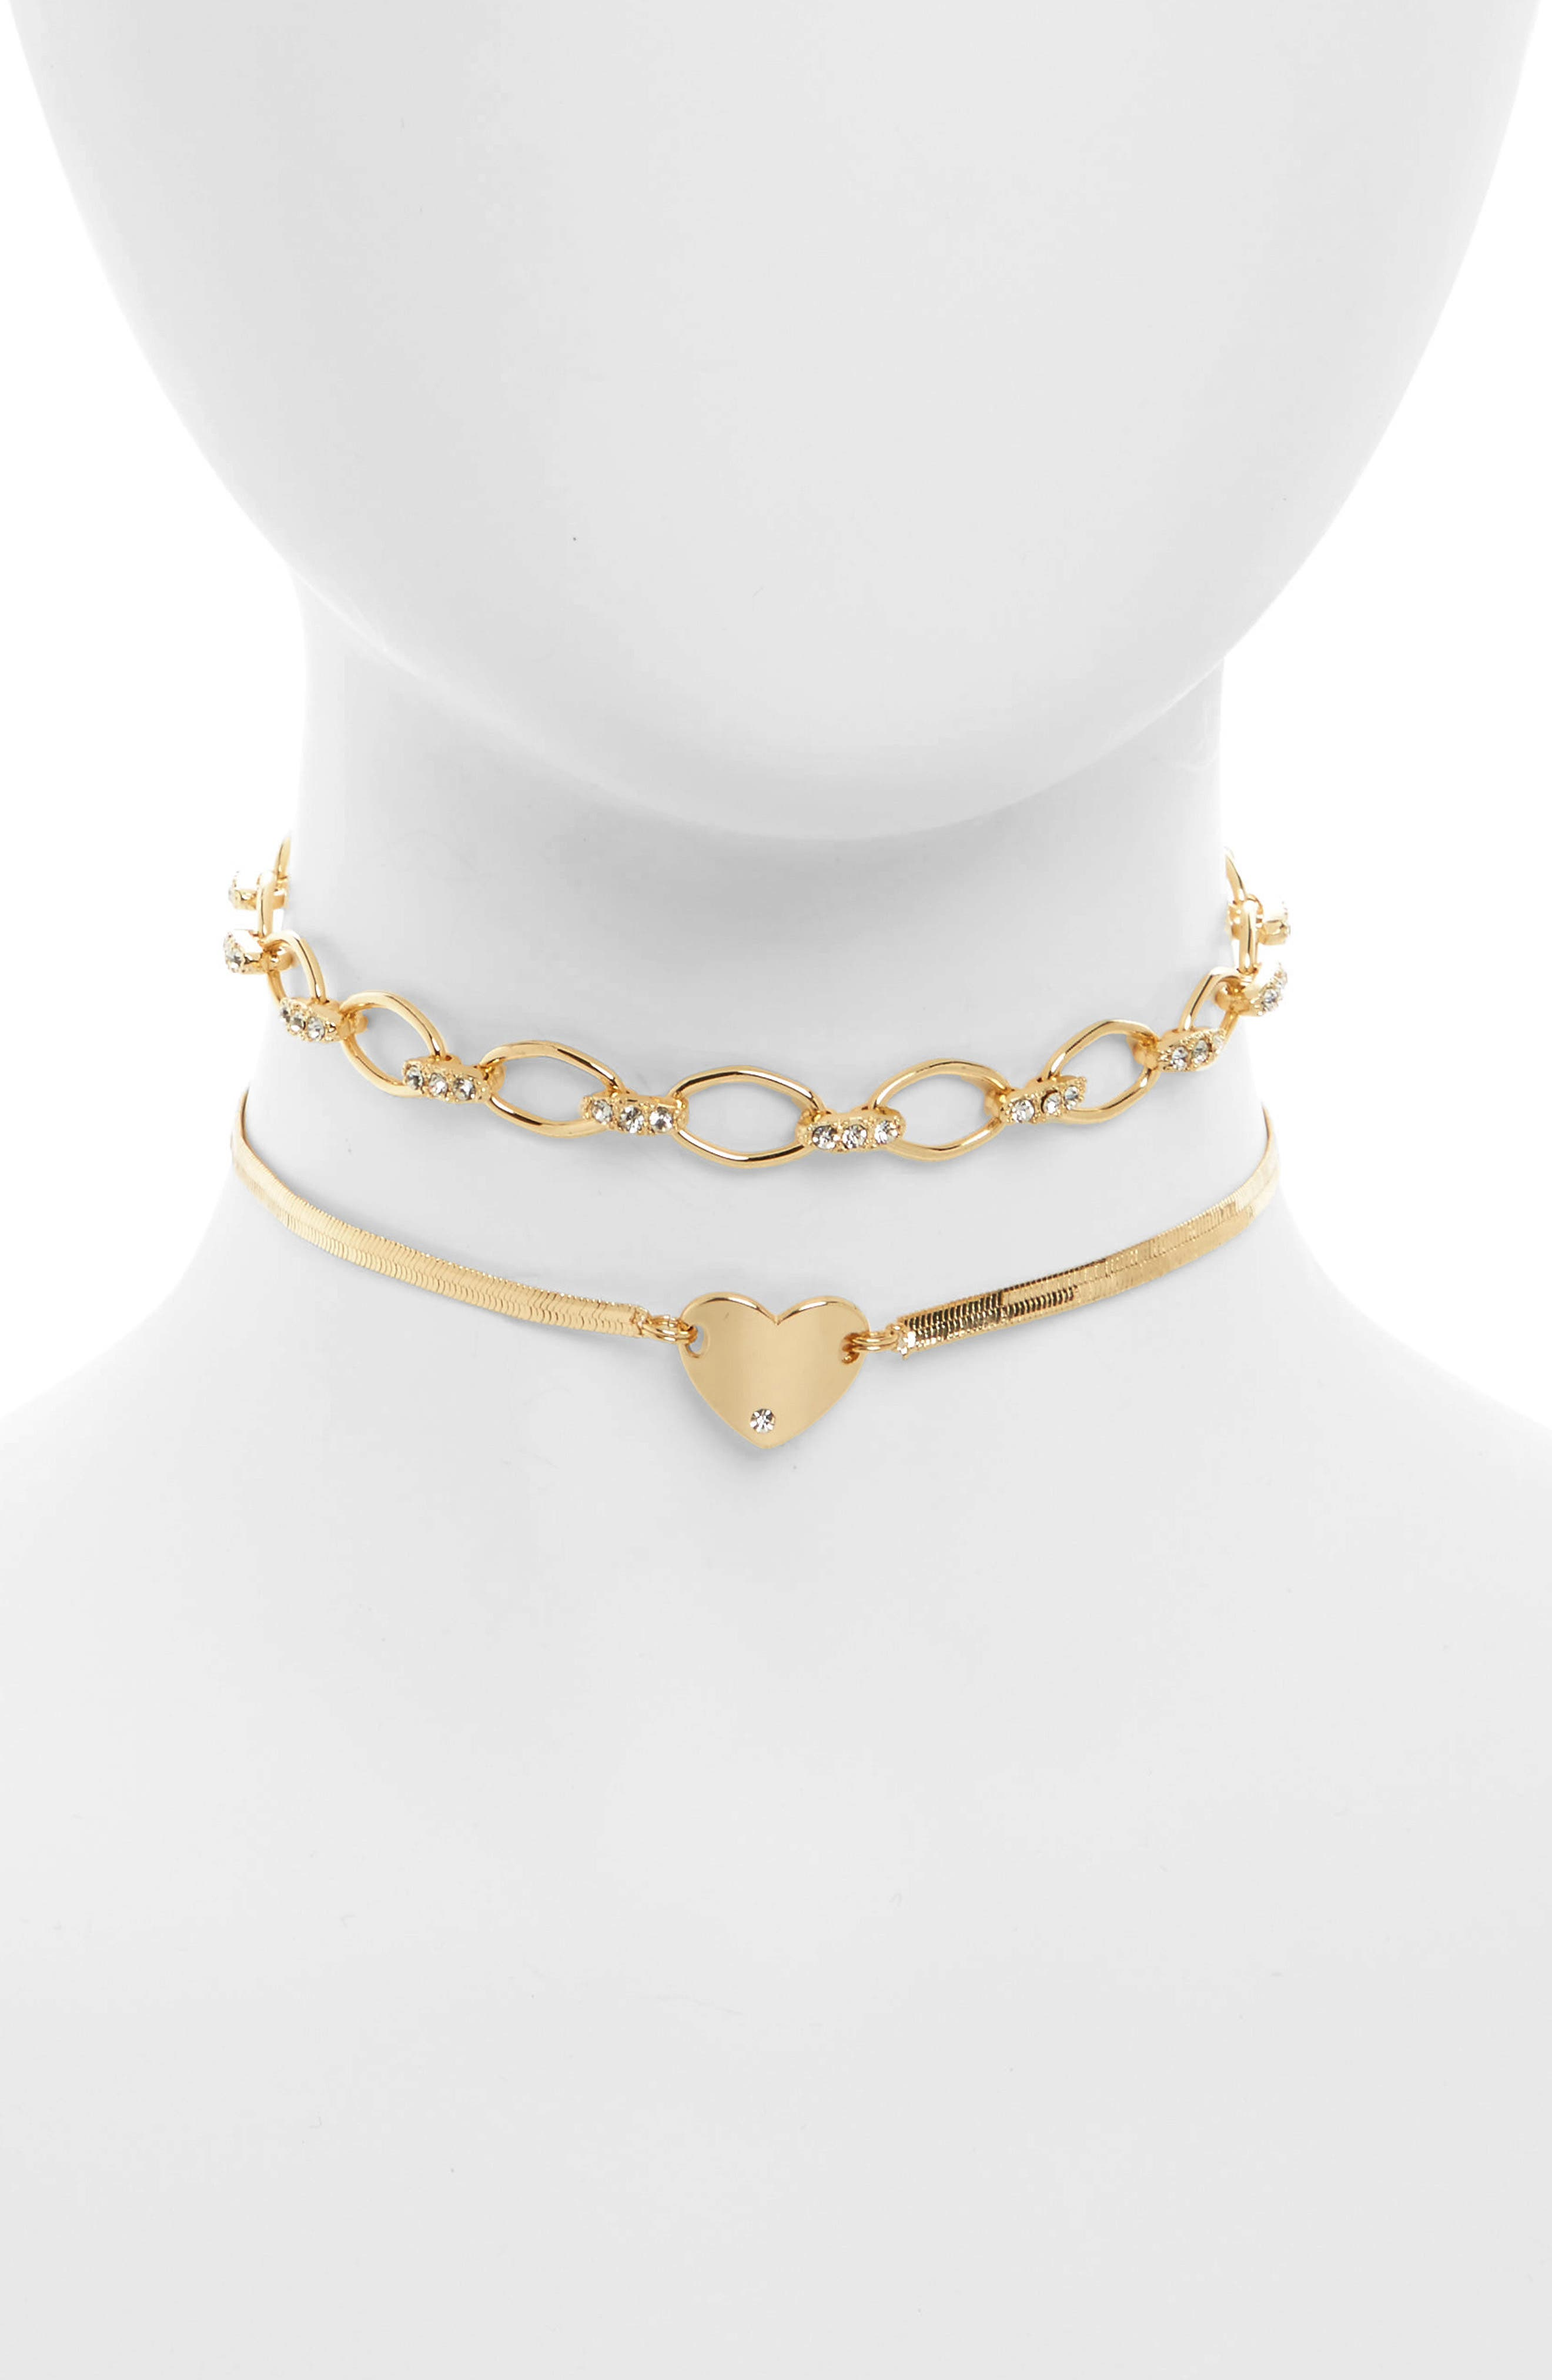 2-Pack Heart & Crystal Chain Chokers,                             Main thumbnail 1, color,                             710